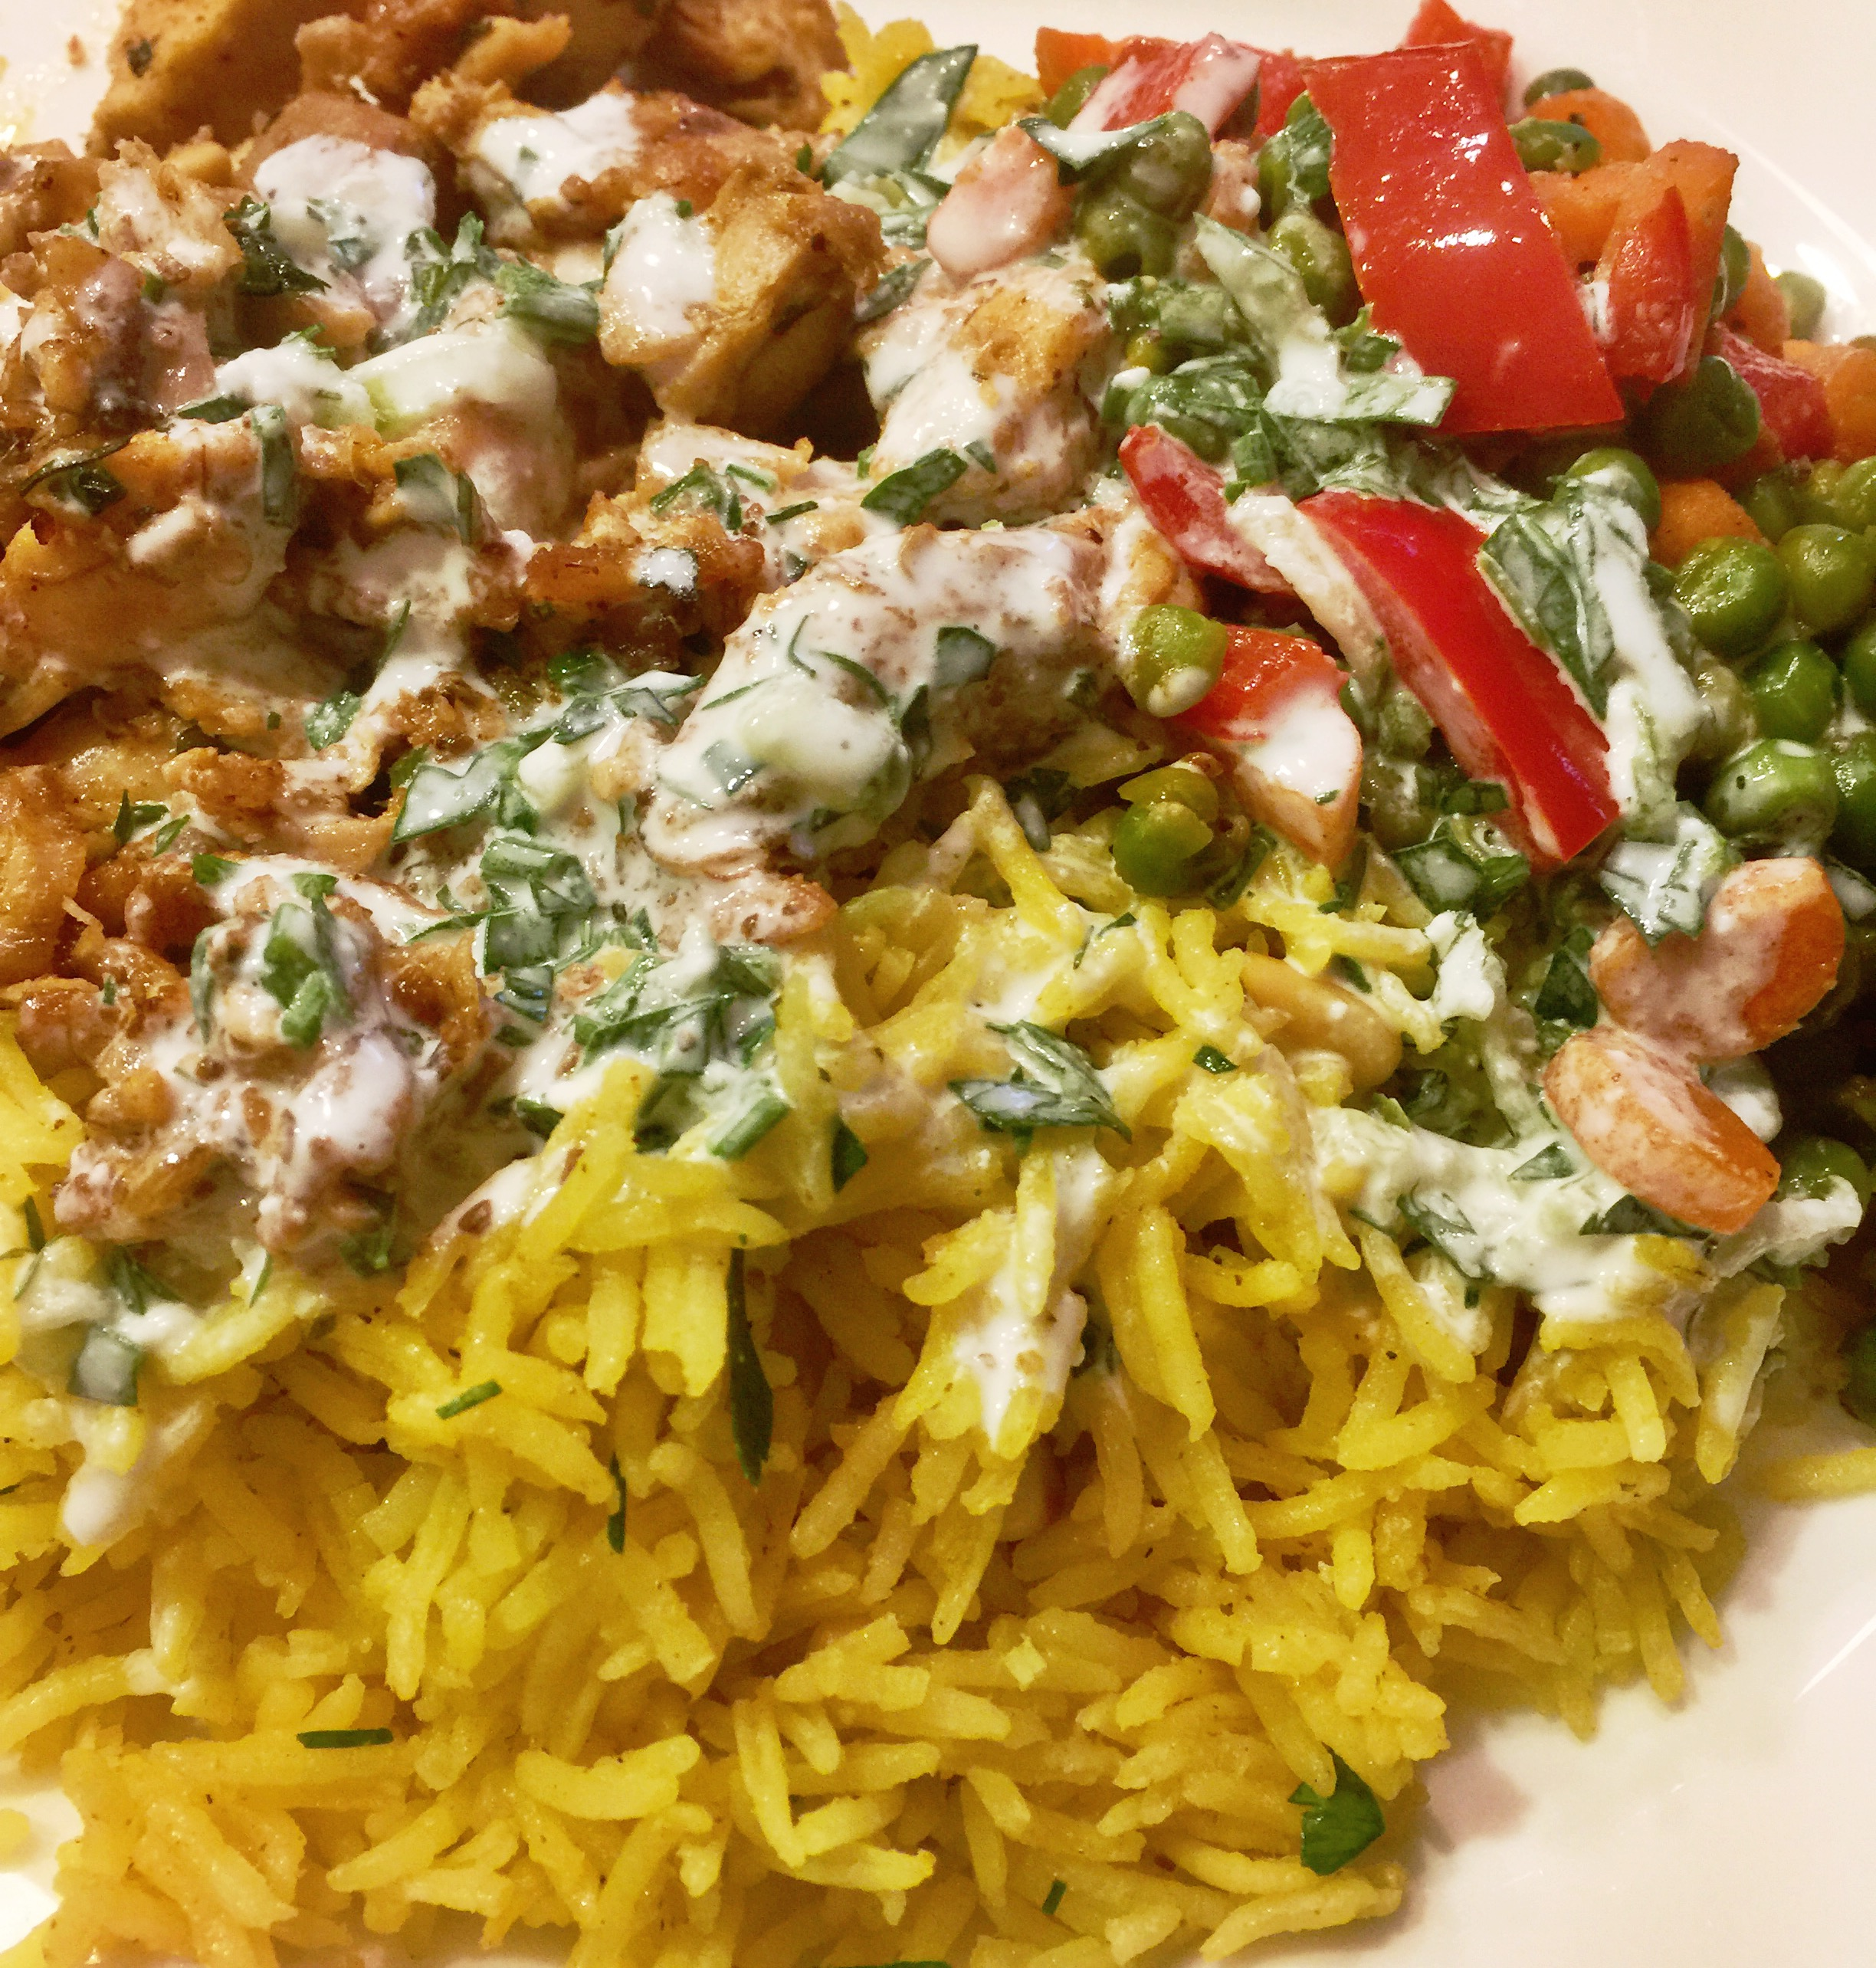 53rd cali halal guys chicken and rice copycat recipe rehana du 53rd cali halal guys chicken and rice copycat recipe forumfinder Image collections